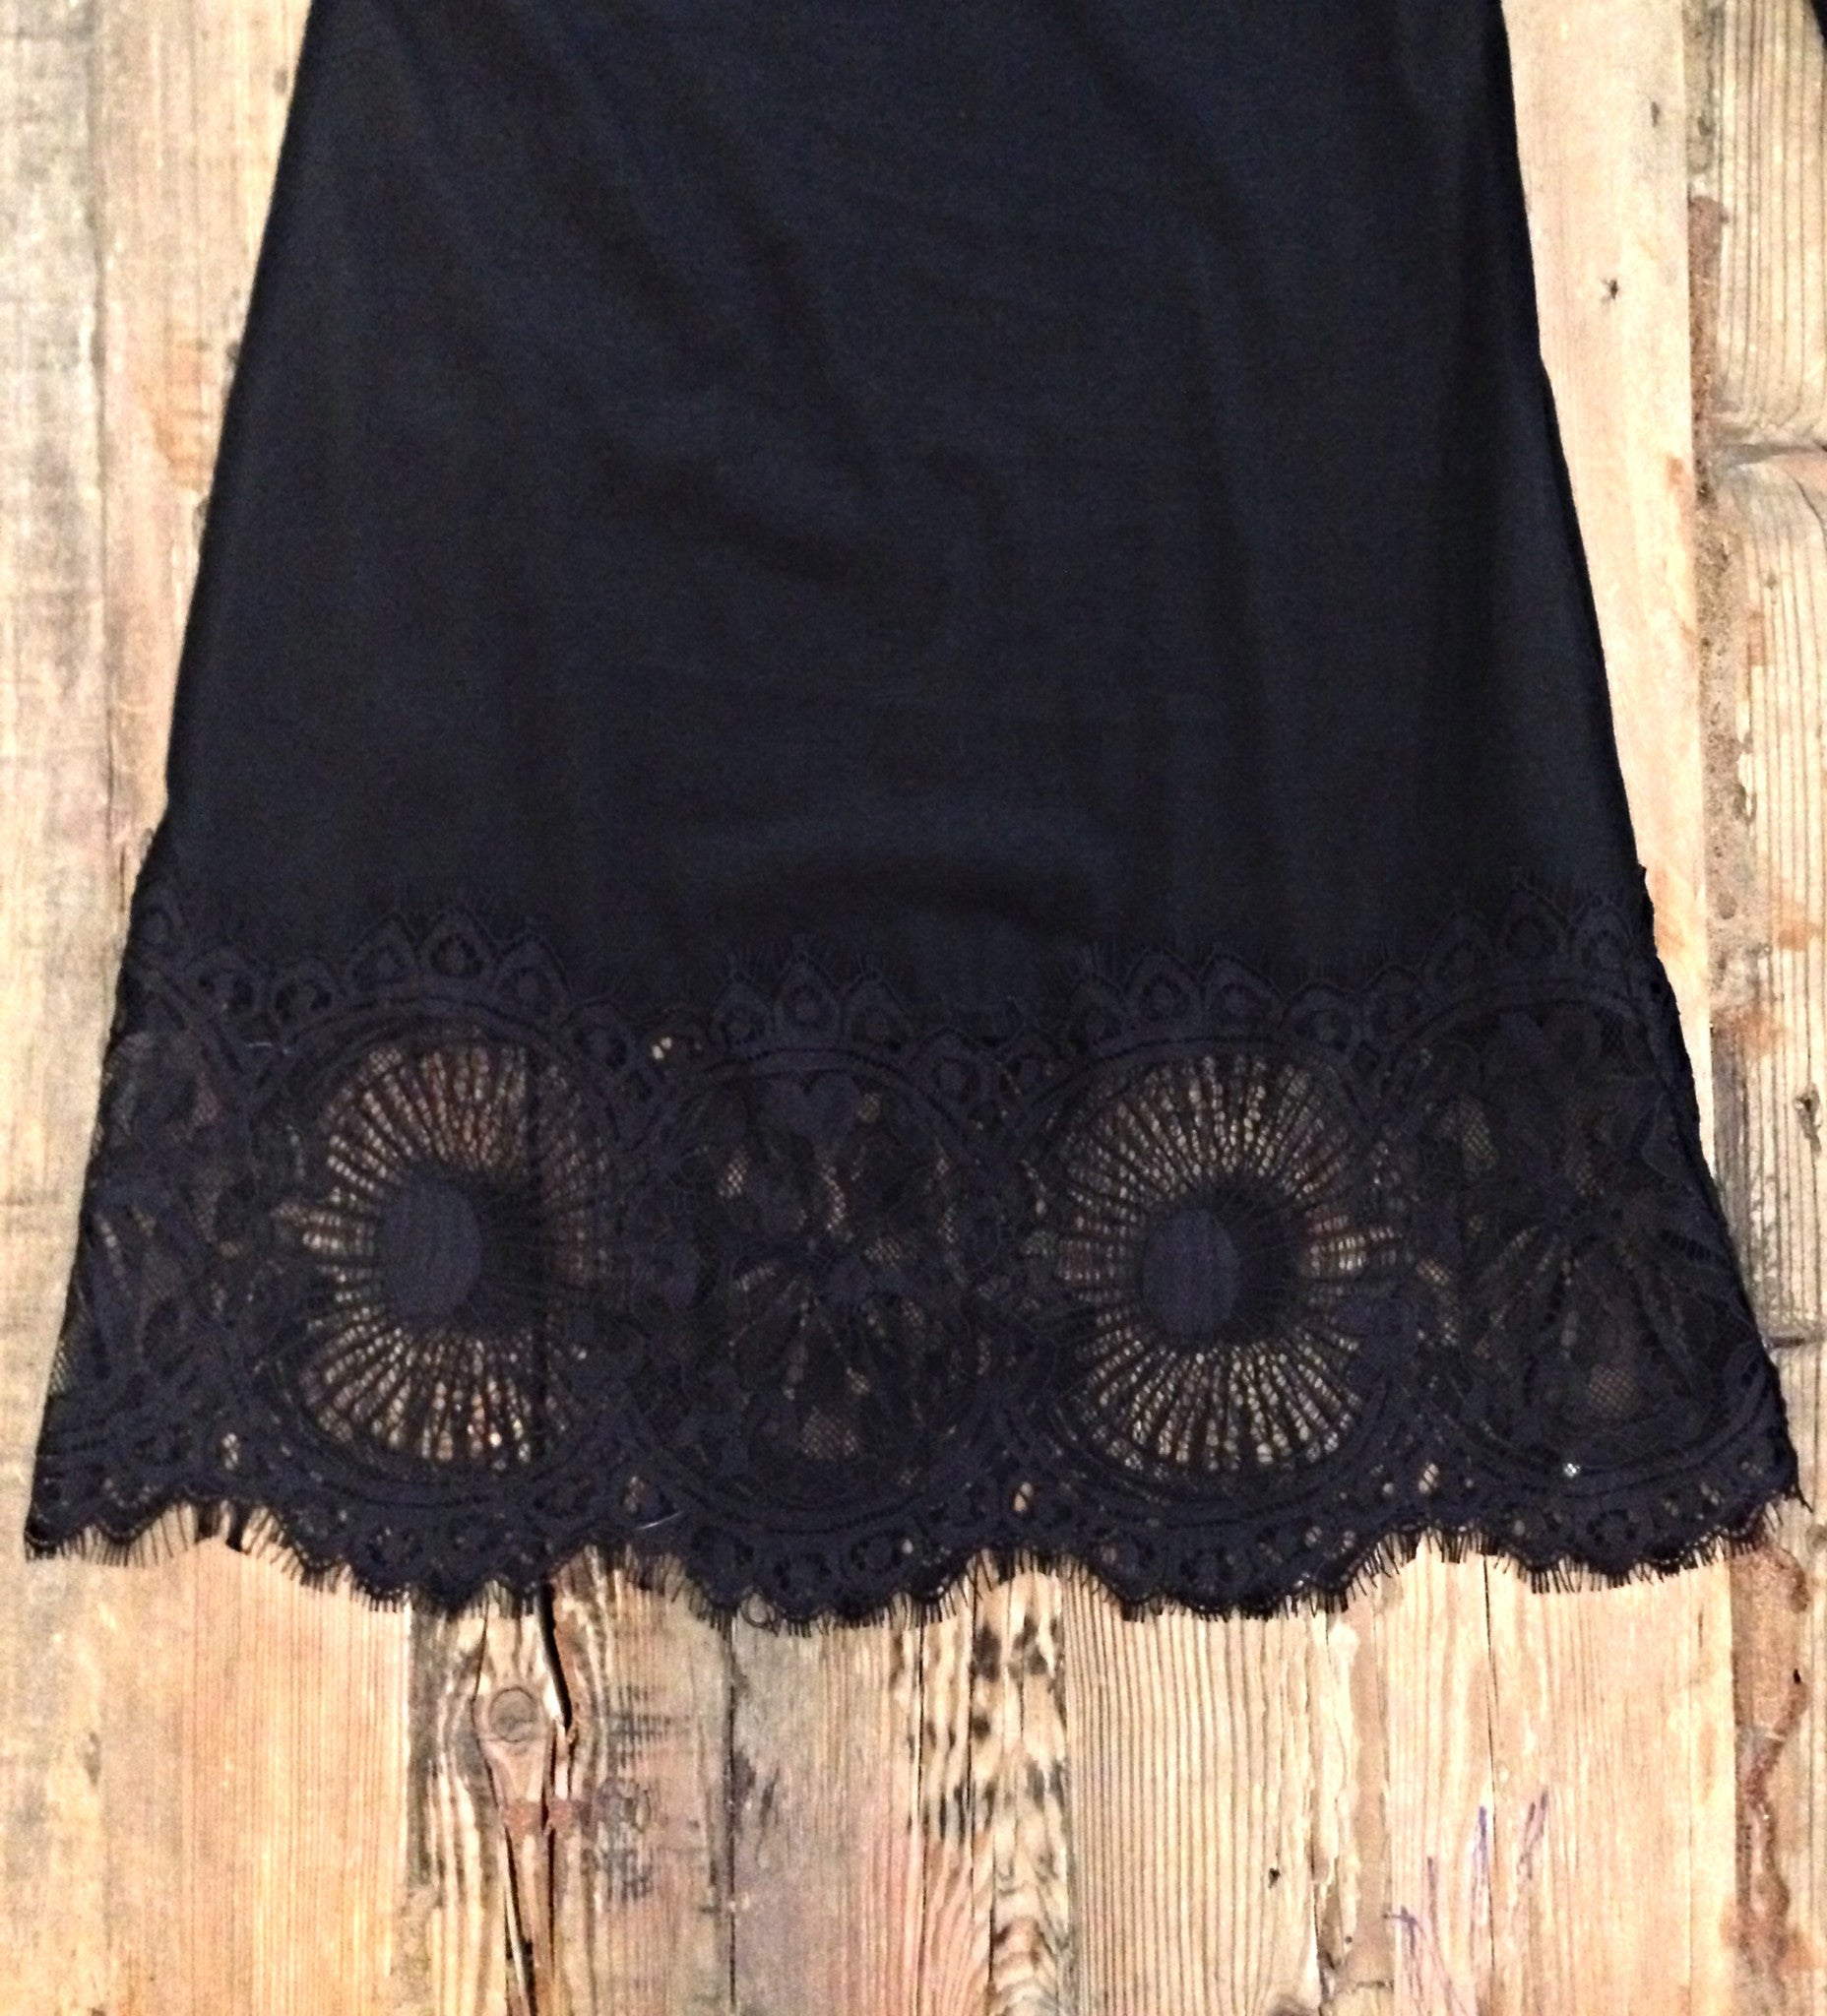 Delilah Lace Bottom Pants-Black - Hapa Clothing